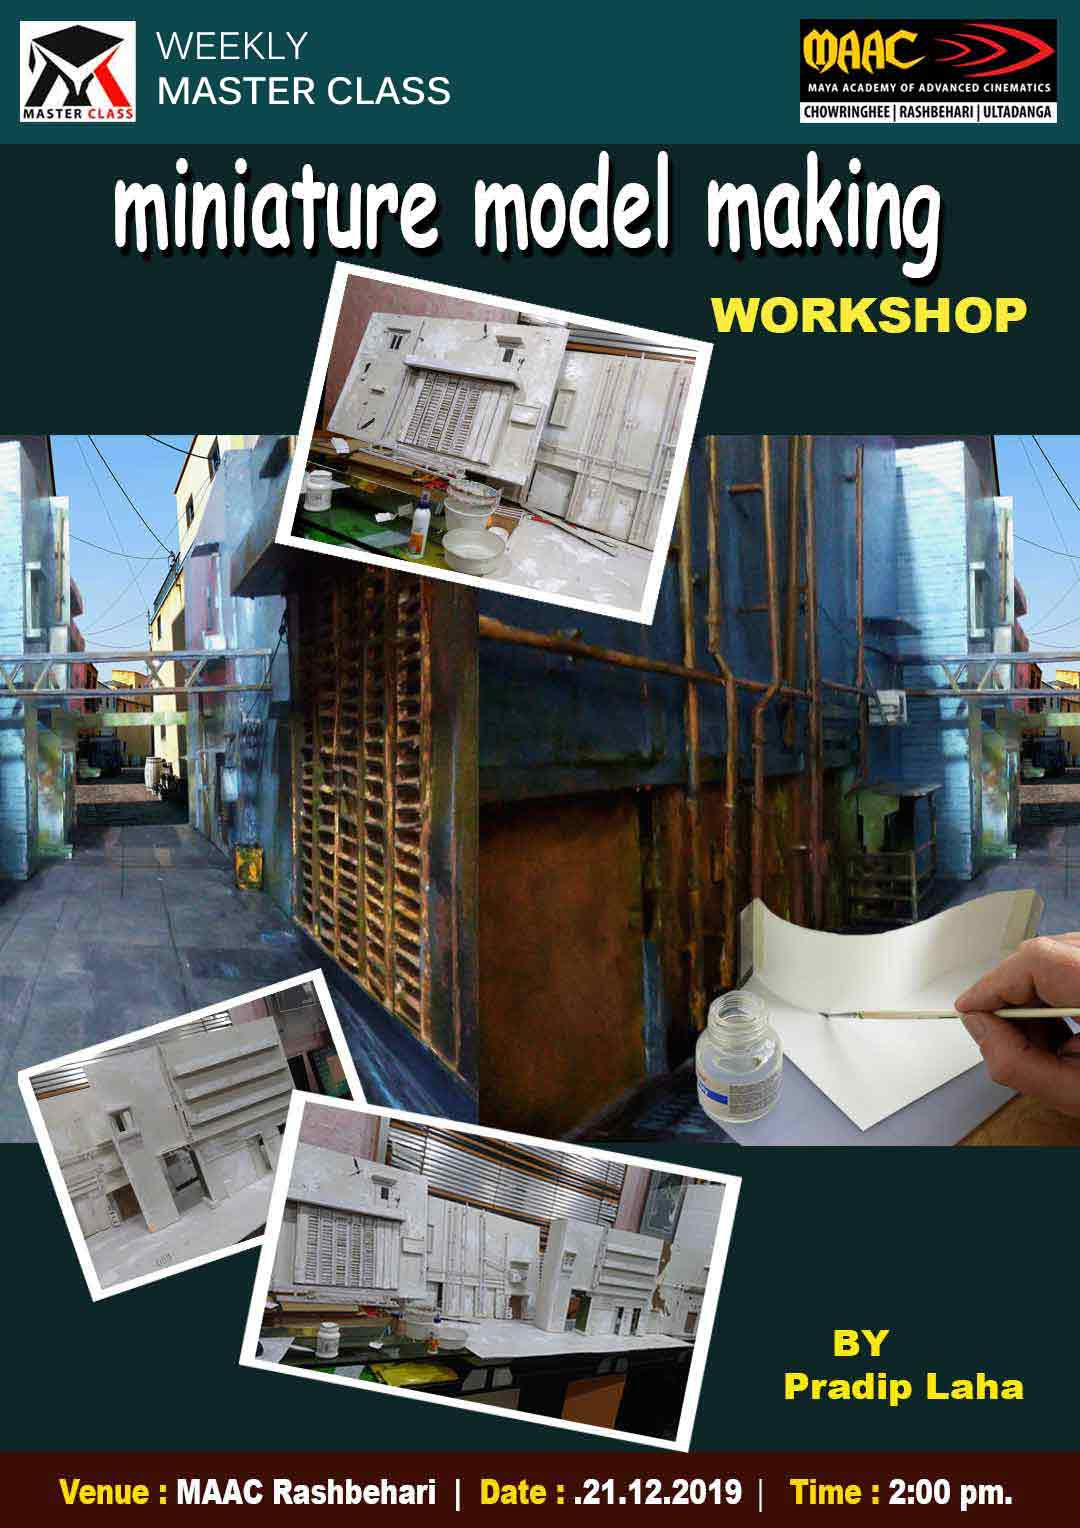 Weekly Master Class on Miniature Model Making Workshop